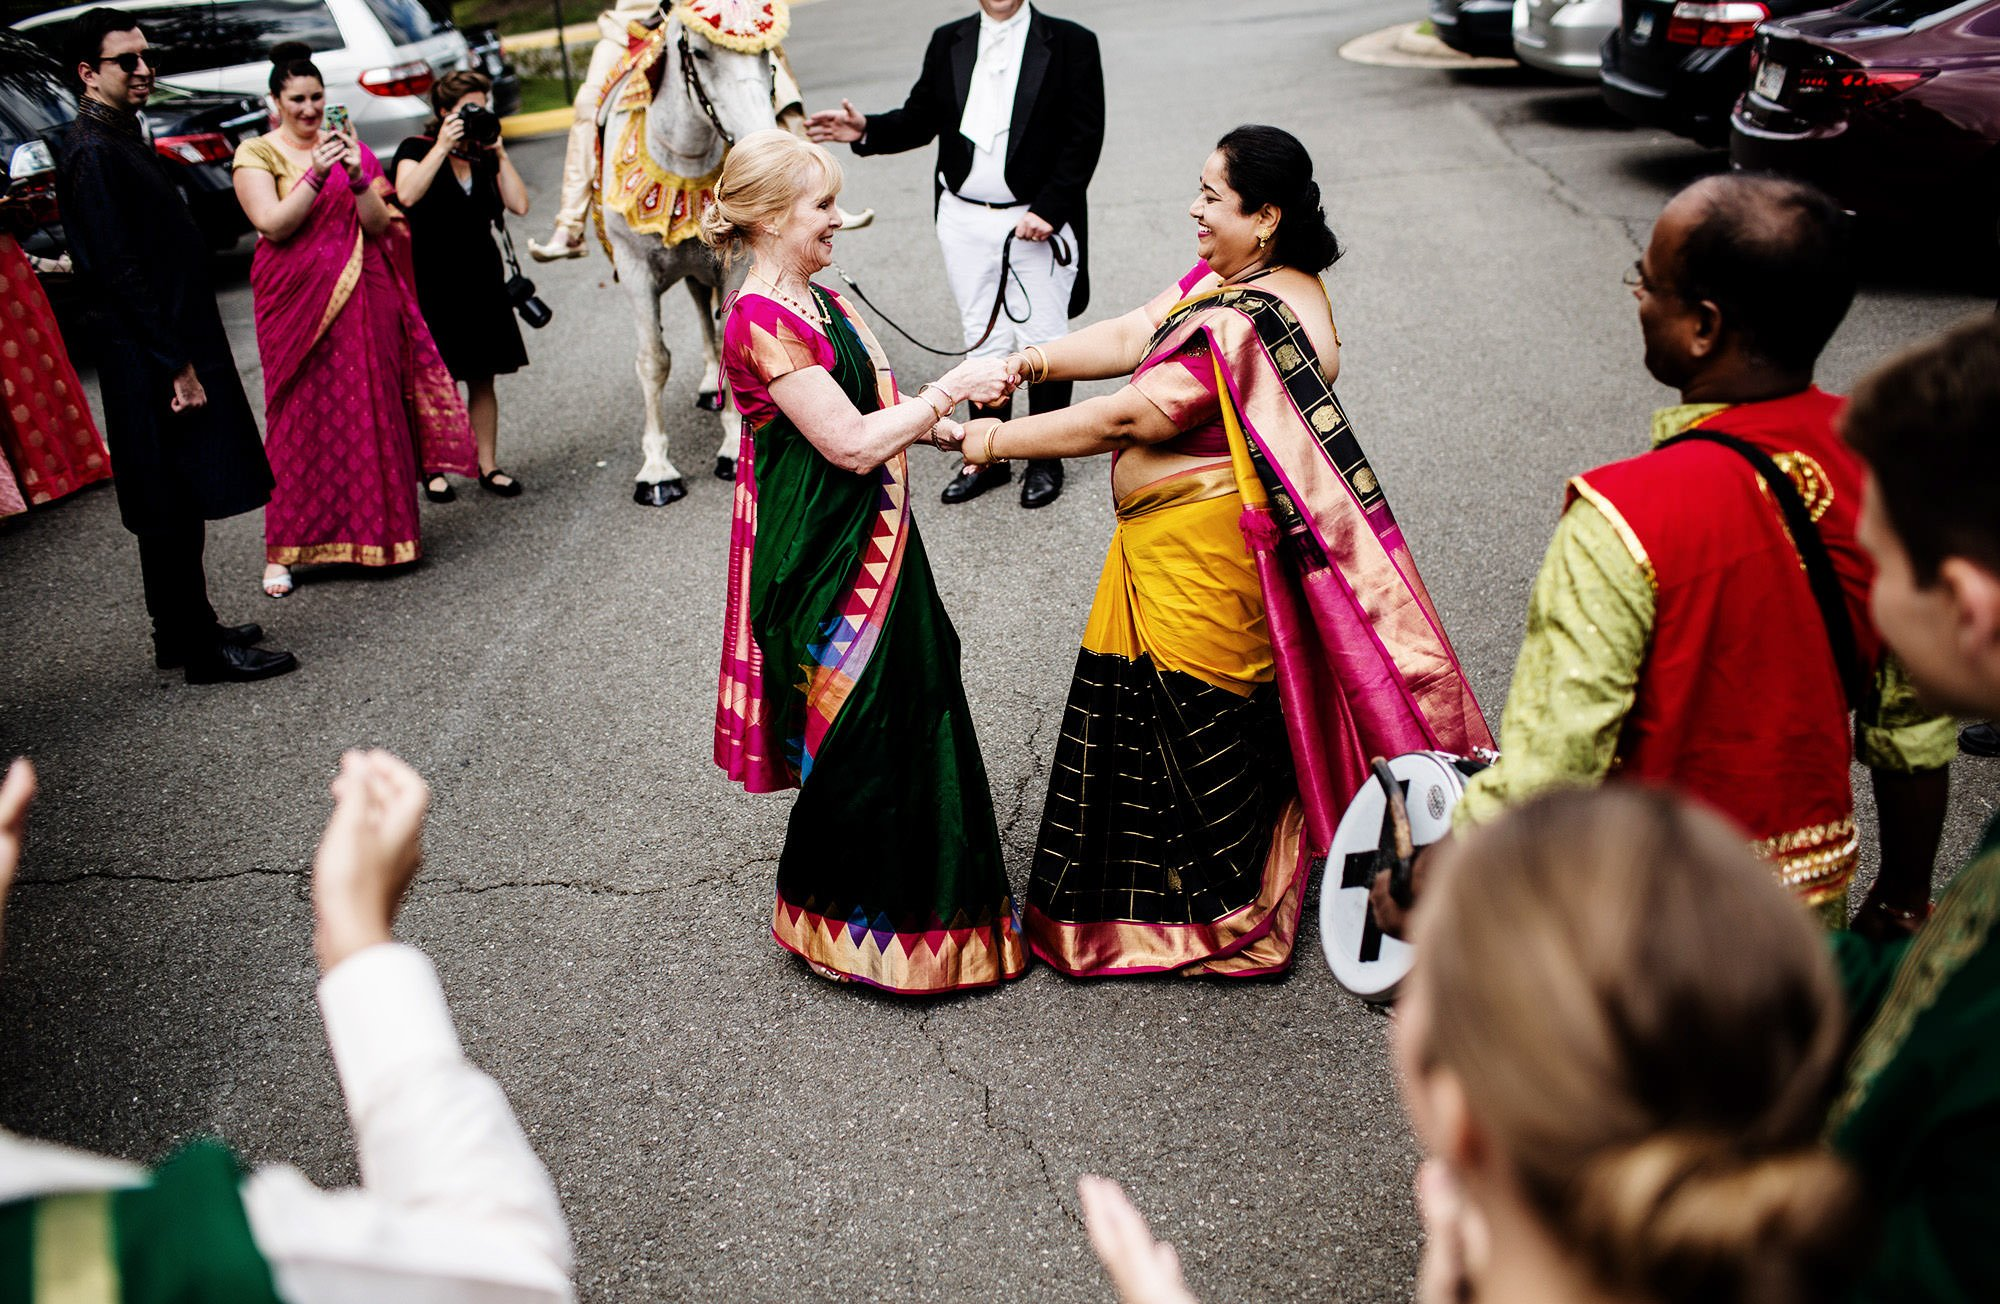 Guests dance in the parking lot during the Baraat outside of Foxchase Manor in Manassas, VA.